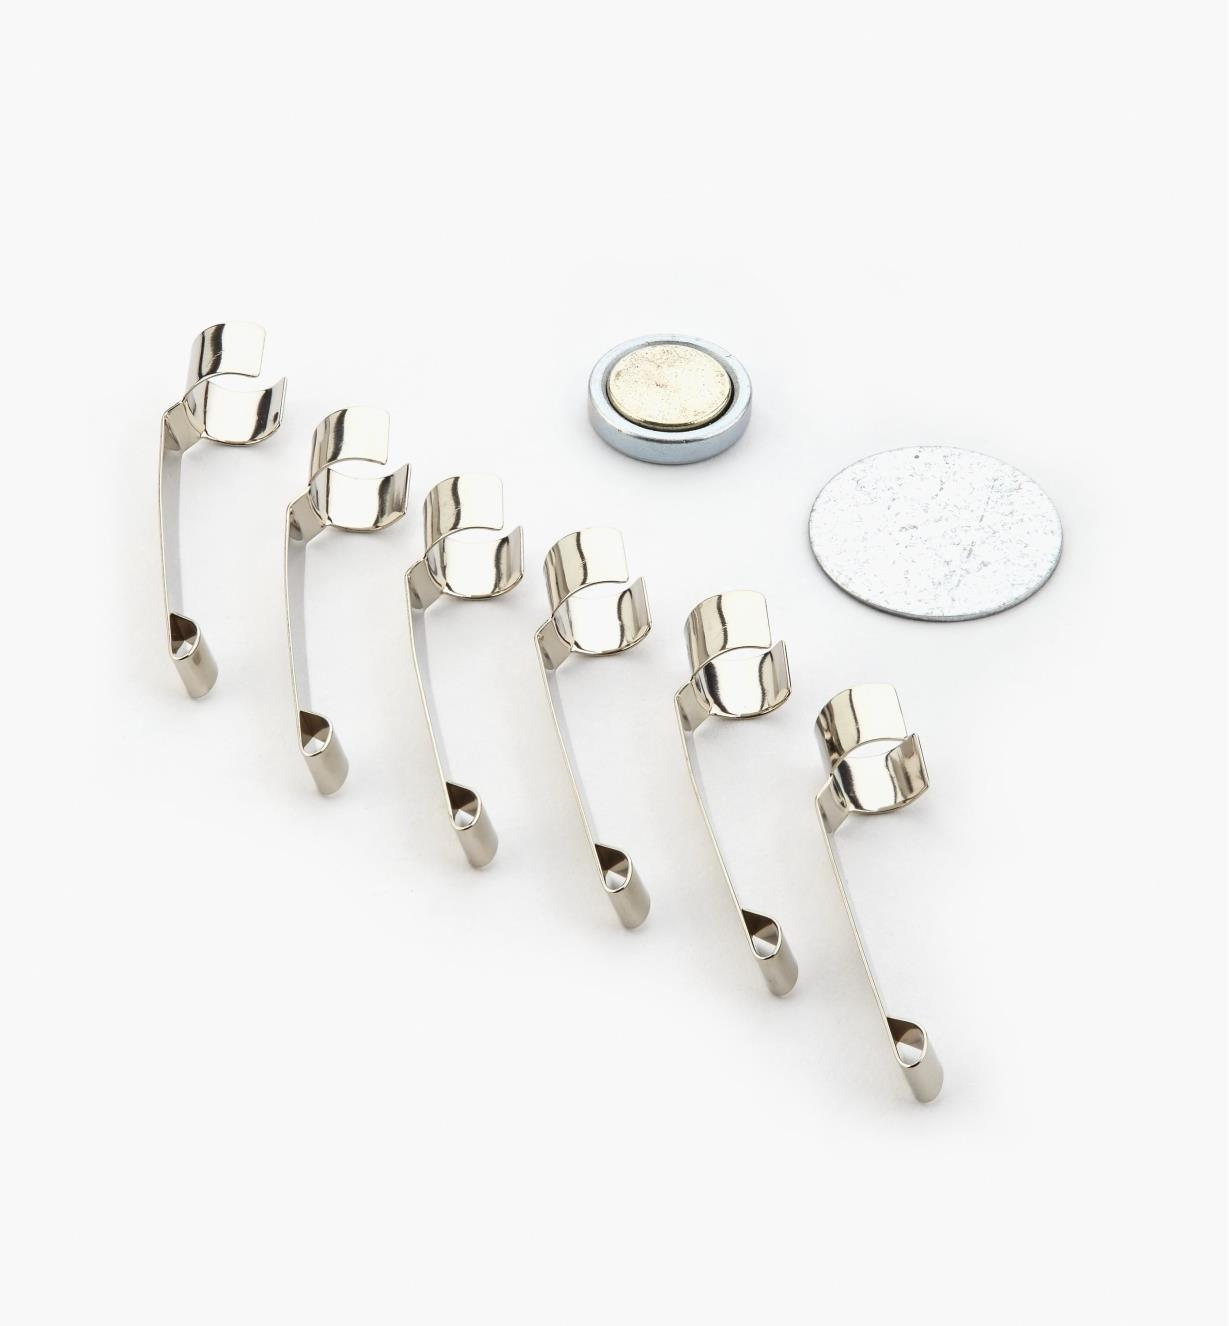 05N5201 - Magnetic Holder with 6 Clips